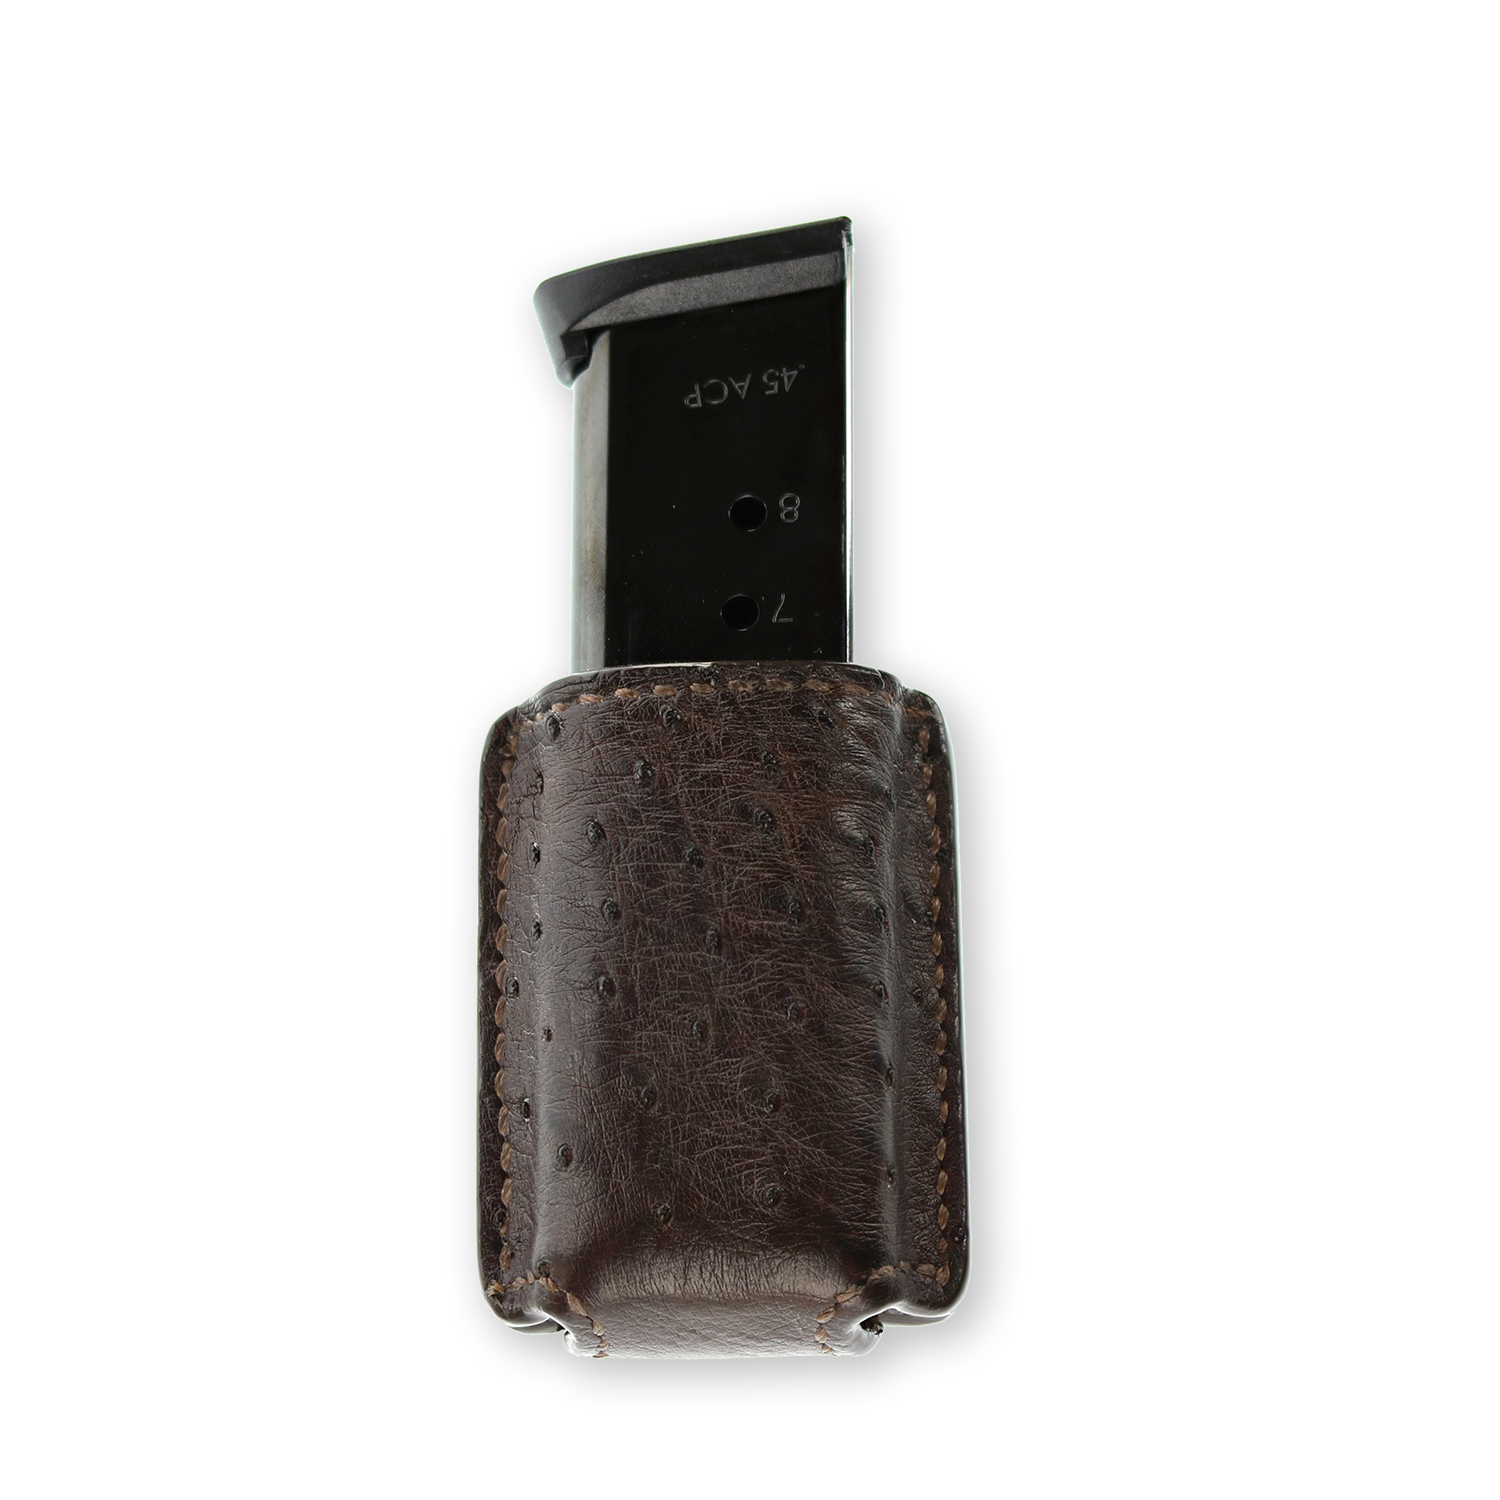 If you appreciate exotic animal skin goods, you can access some of those materials in your mag carrier - like this ostrich-skin pouch.